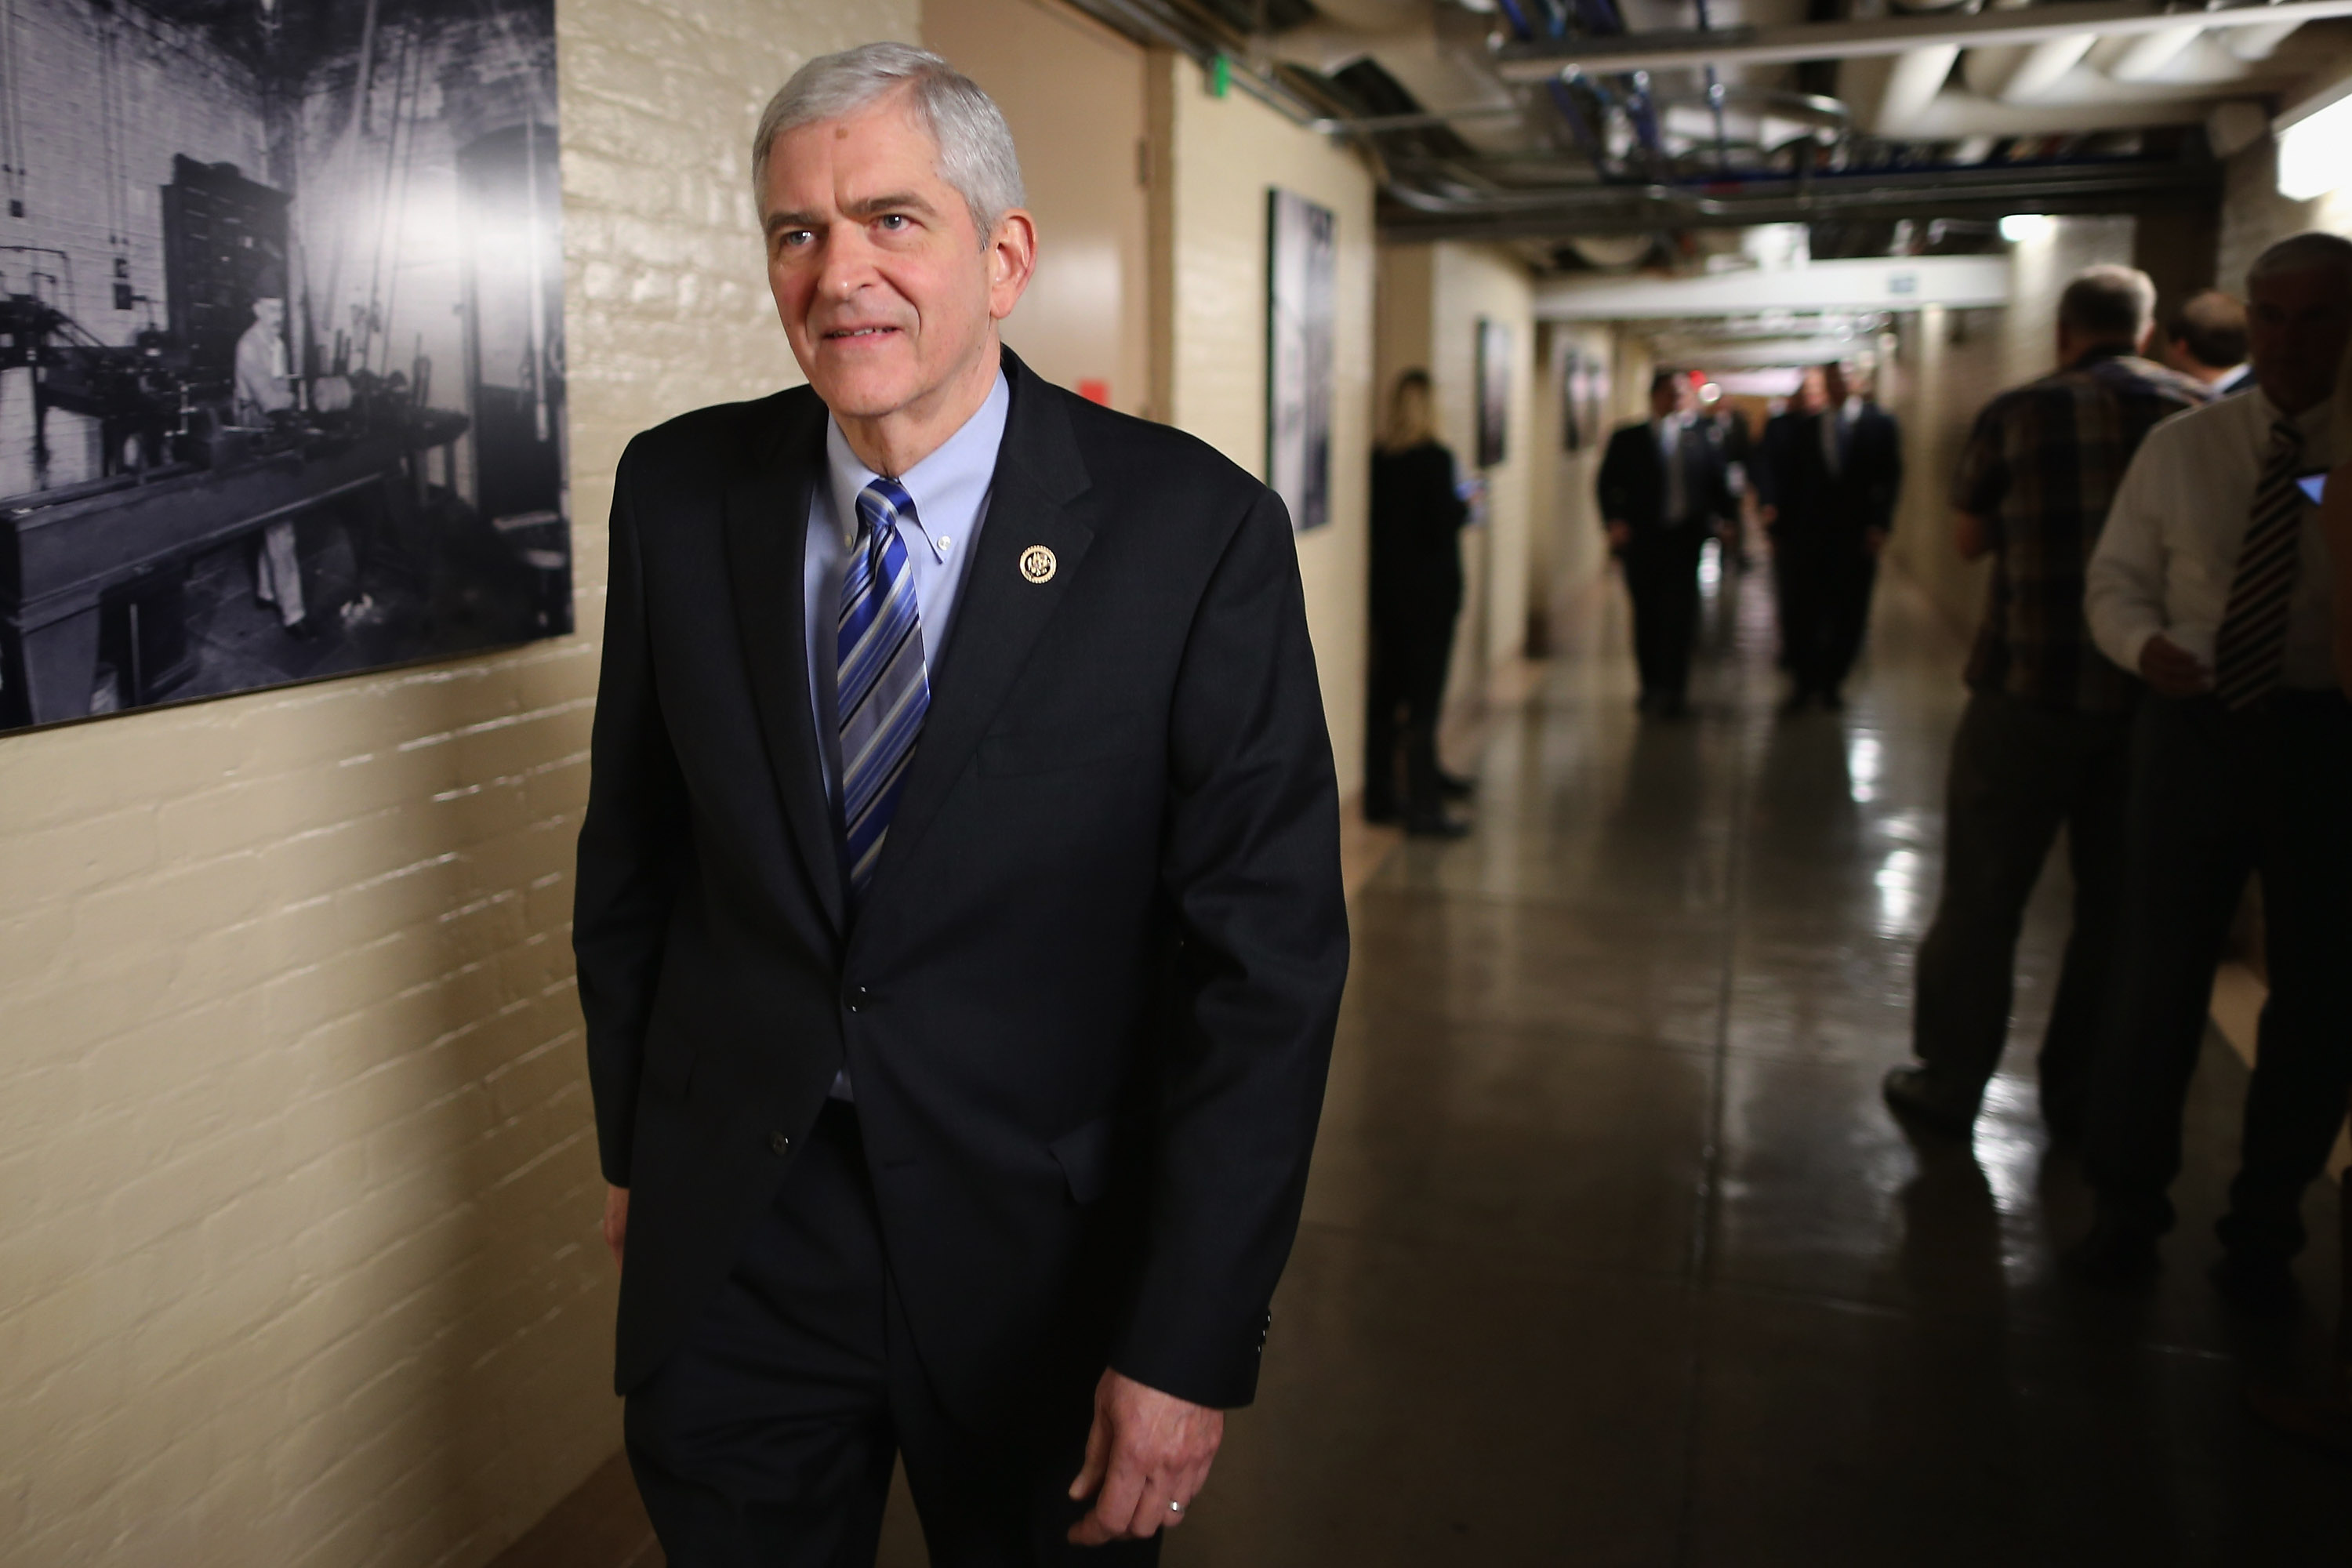 Rep. Daniel Webster (R-FL) heads for a House Republican caucus meeting in the basement of the U.S. Capitol in Washington, D.C., on Oct. 9, 2015.